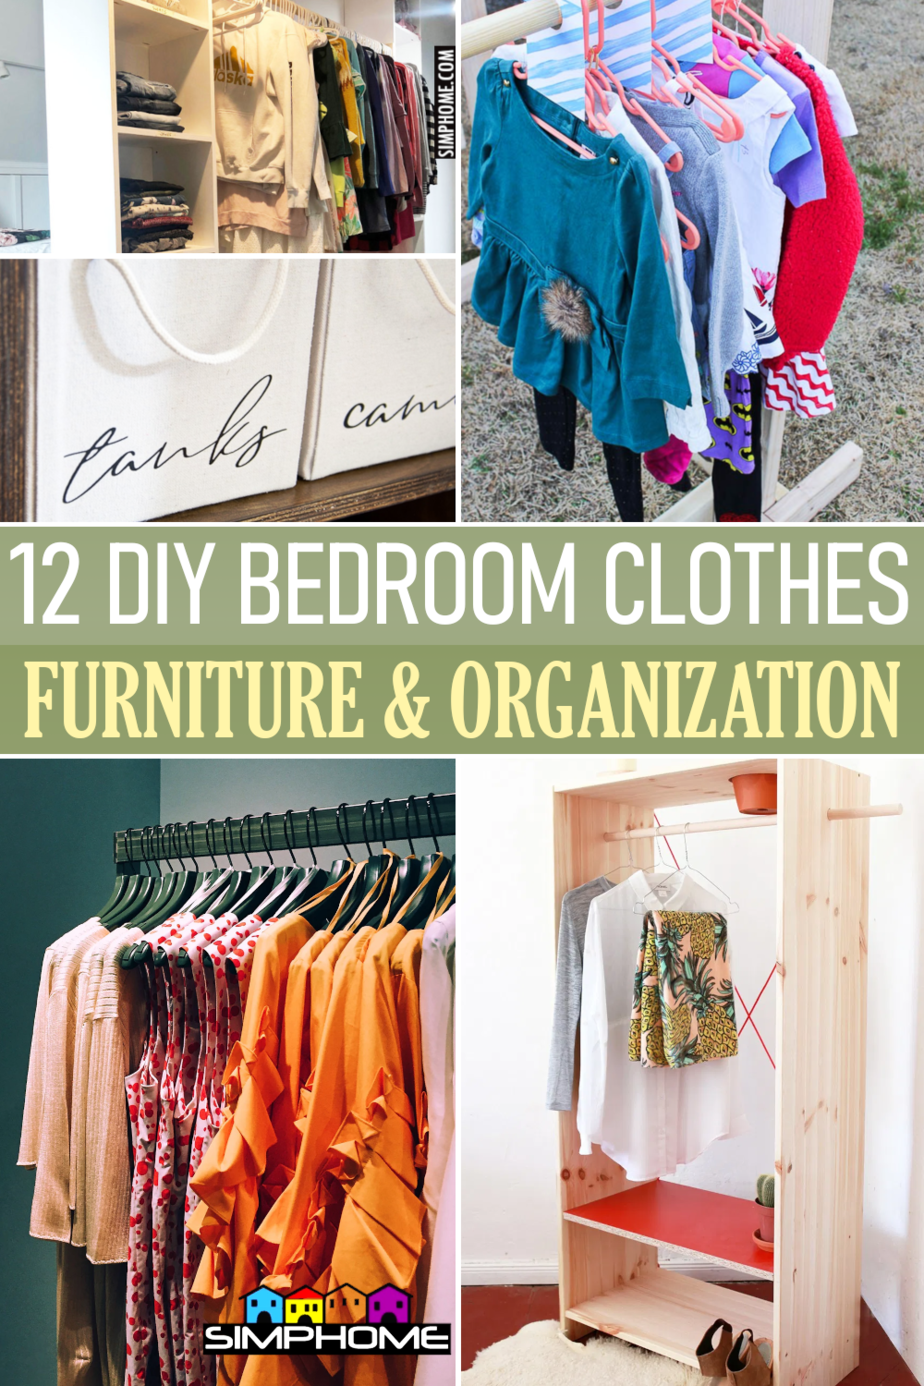 12 DIY Bedroom Clothes Furniture and Garment Organization via Simphome.comFeatured